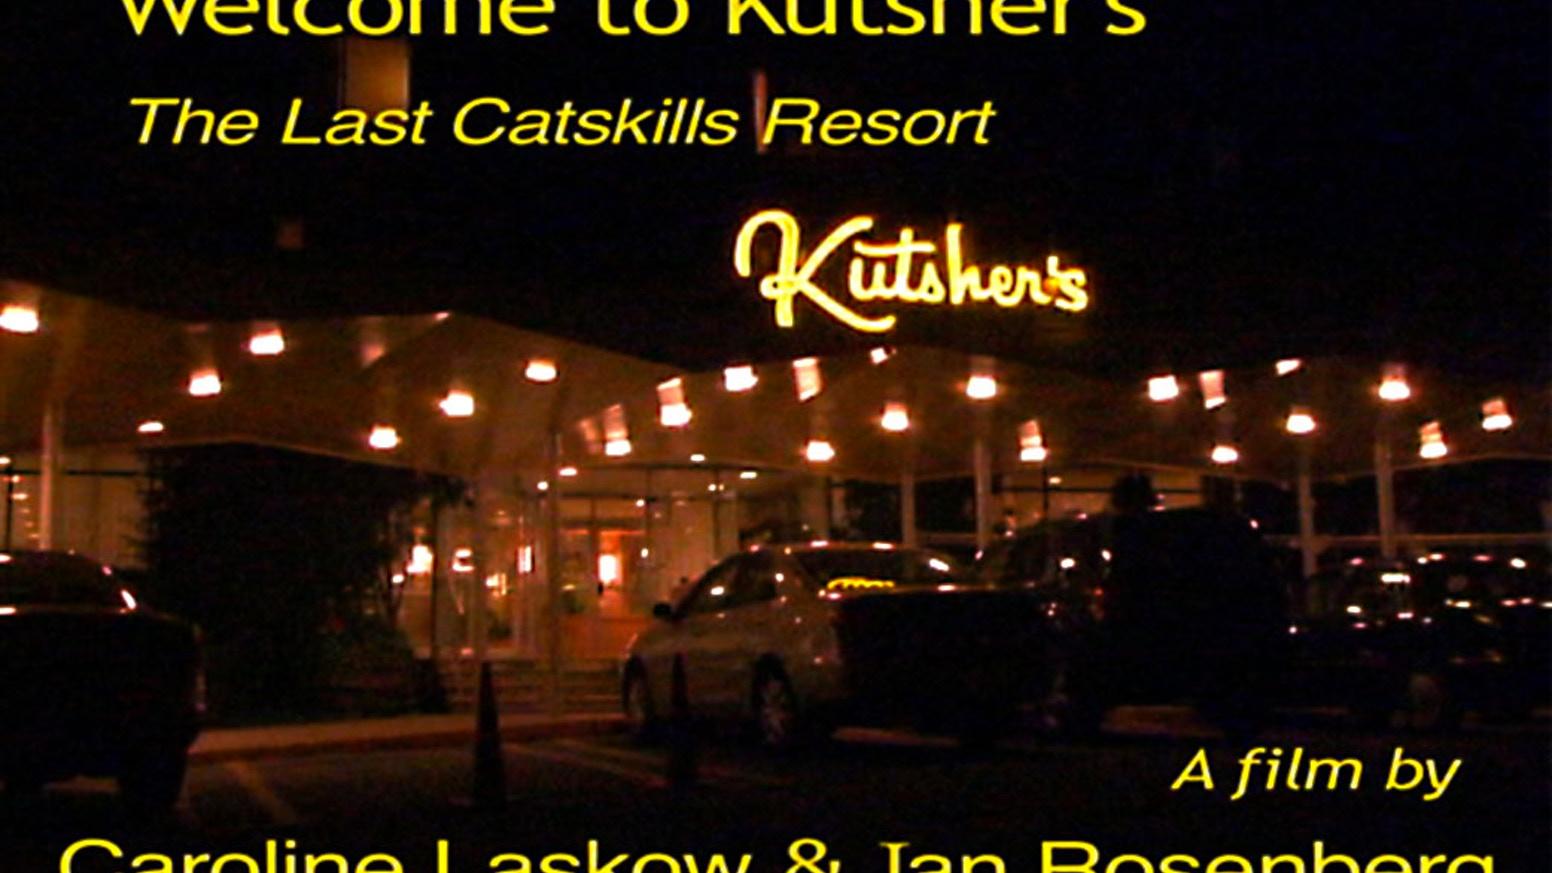 Kutsher's was the last surviving Jewish resort in the Catskills. This award-winning documentary captures a lost world as it disappears before our eyes.